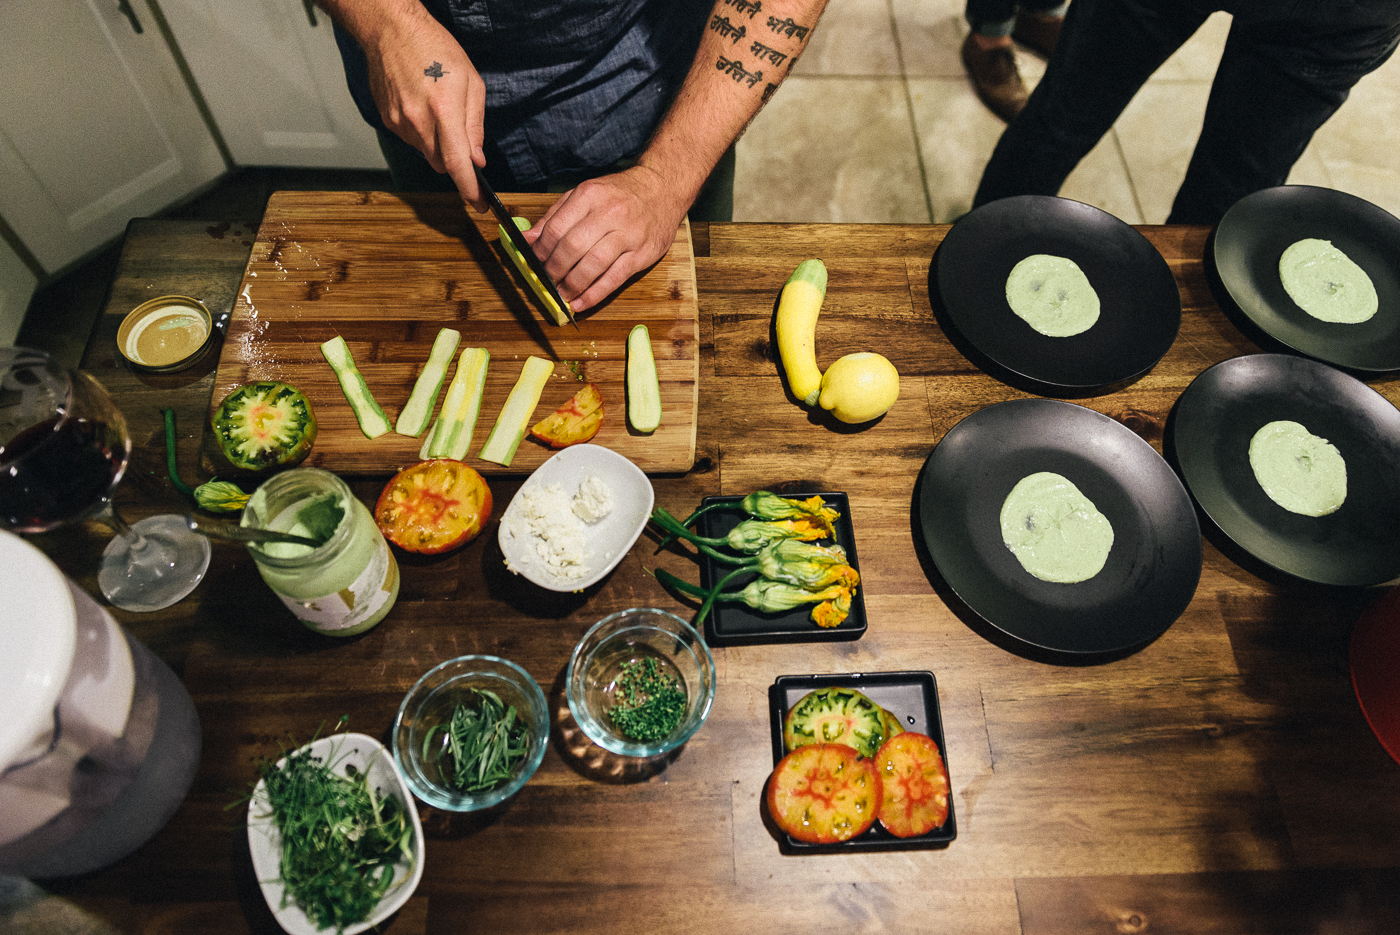 Stuffed zucchini blossoms were on the menu at our special Bar R photo shoot, which Ramsey prepares here in his kitchen.